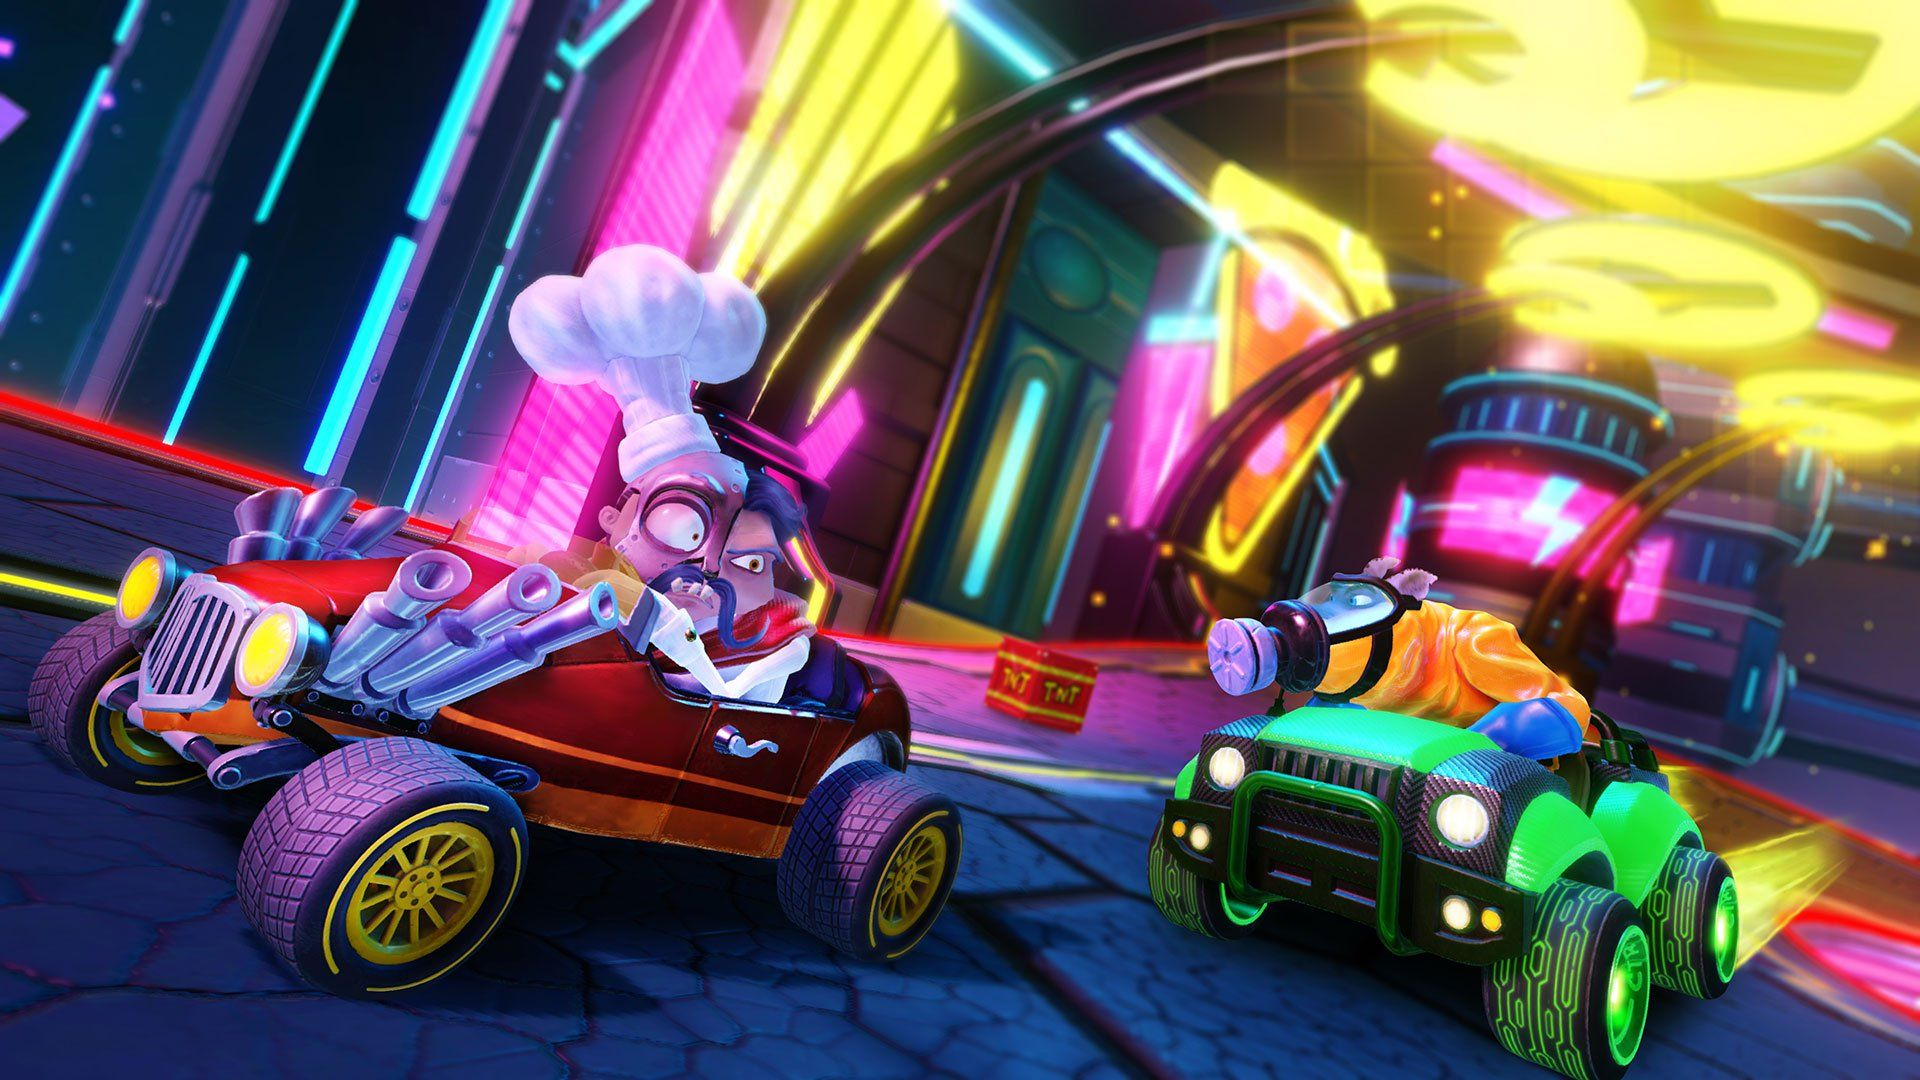 More Characters & Skins Revealed For Crash Team Racing Nitro-Fueled